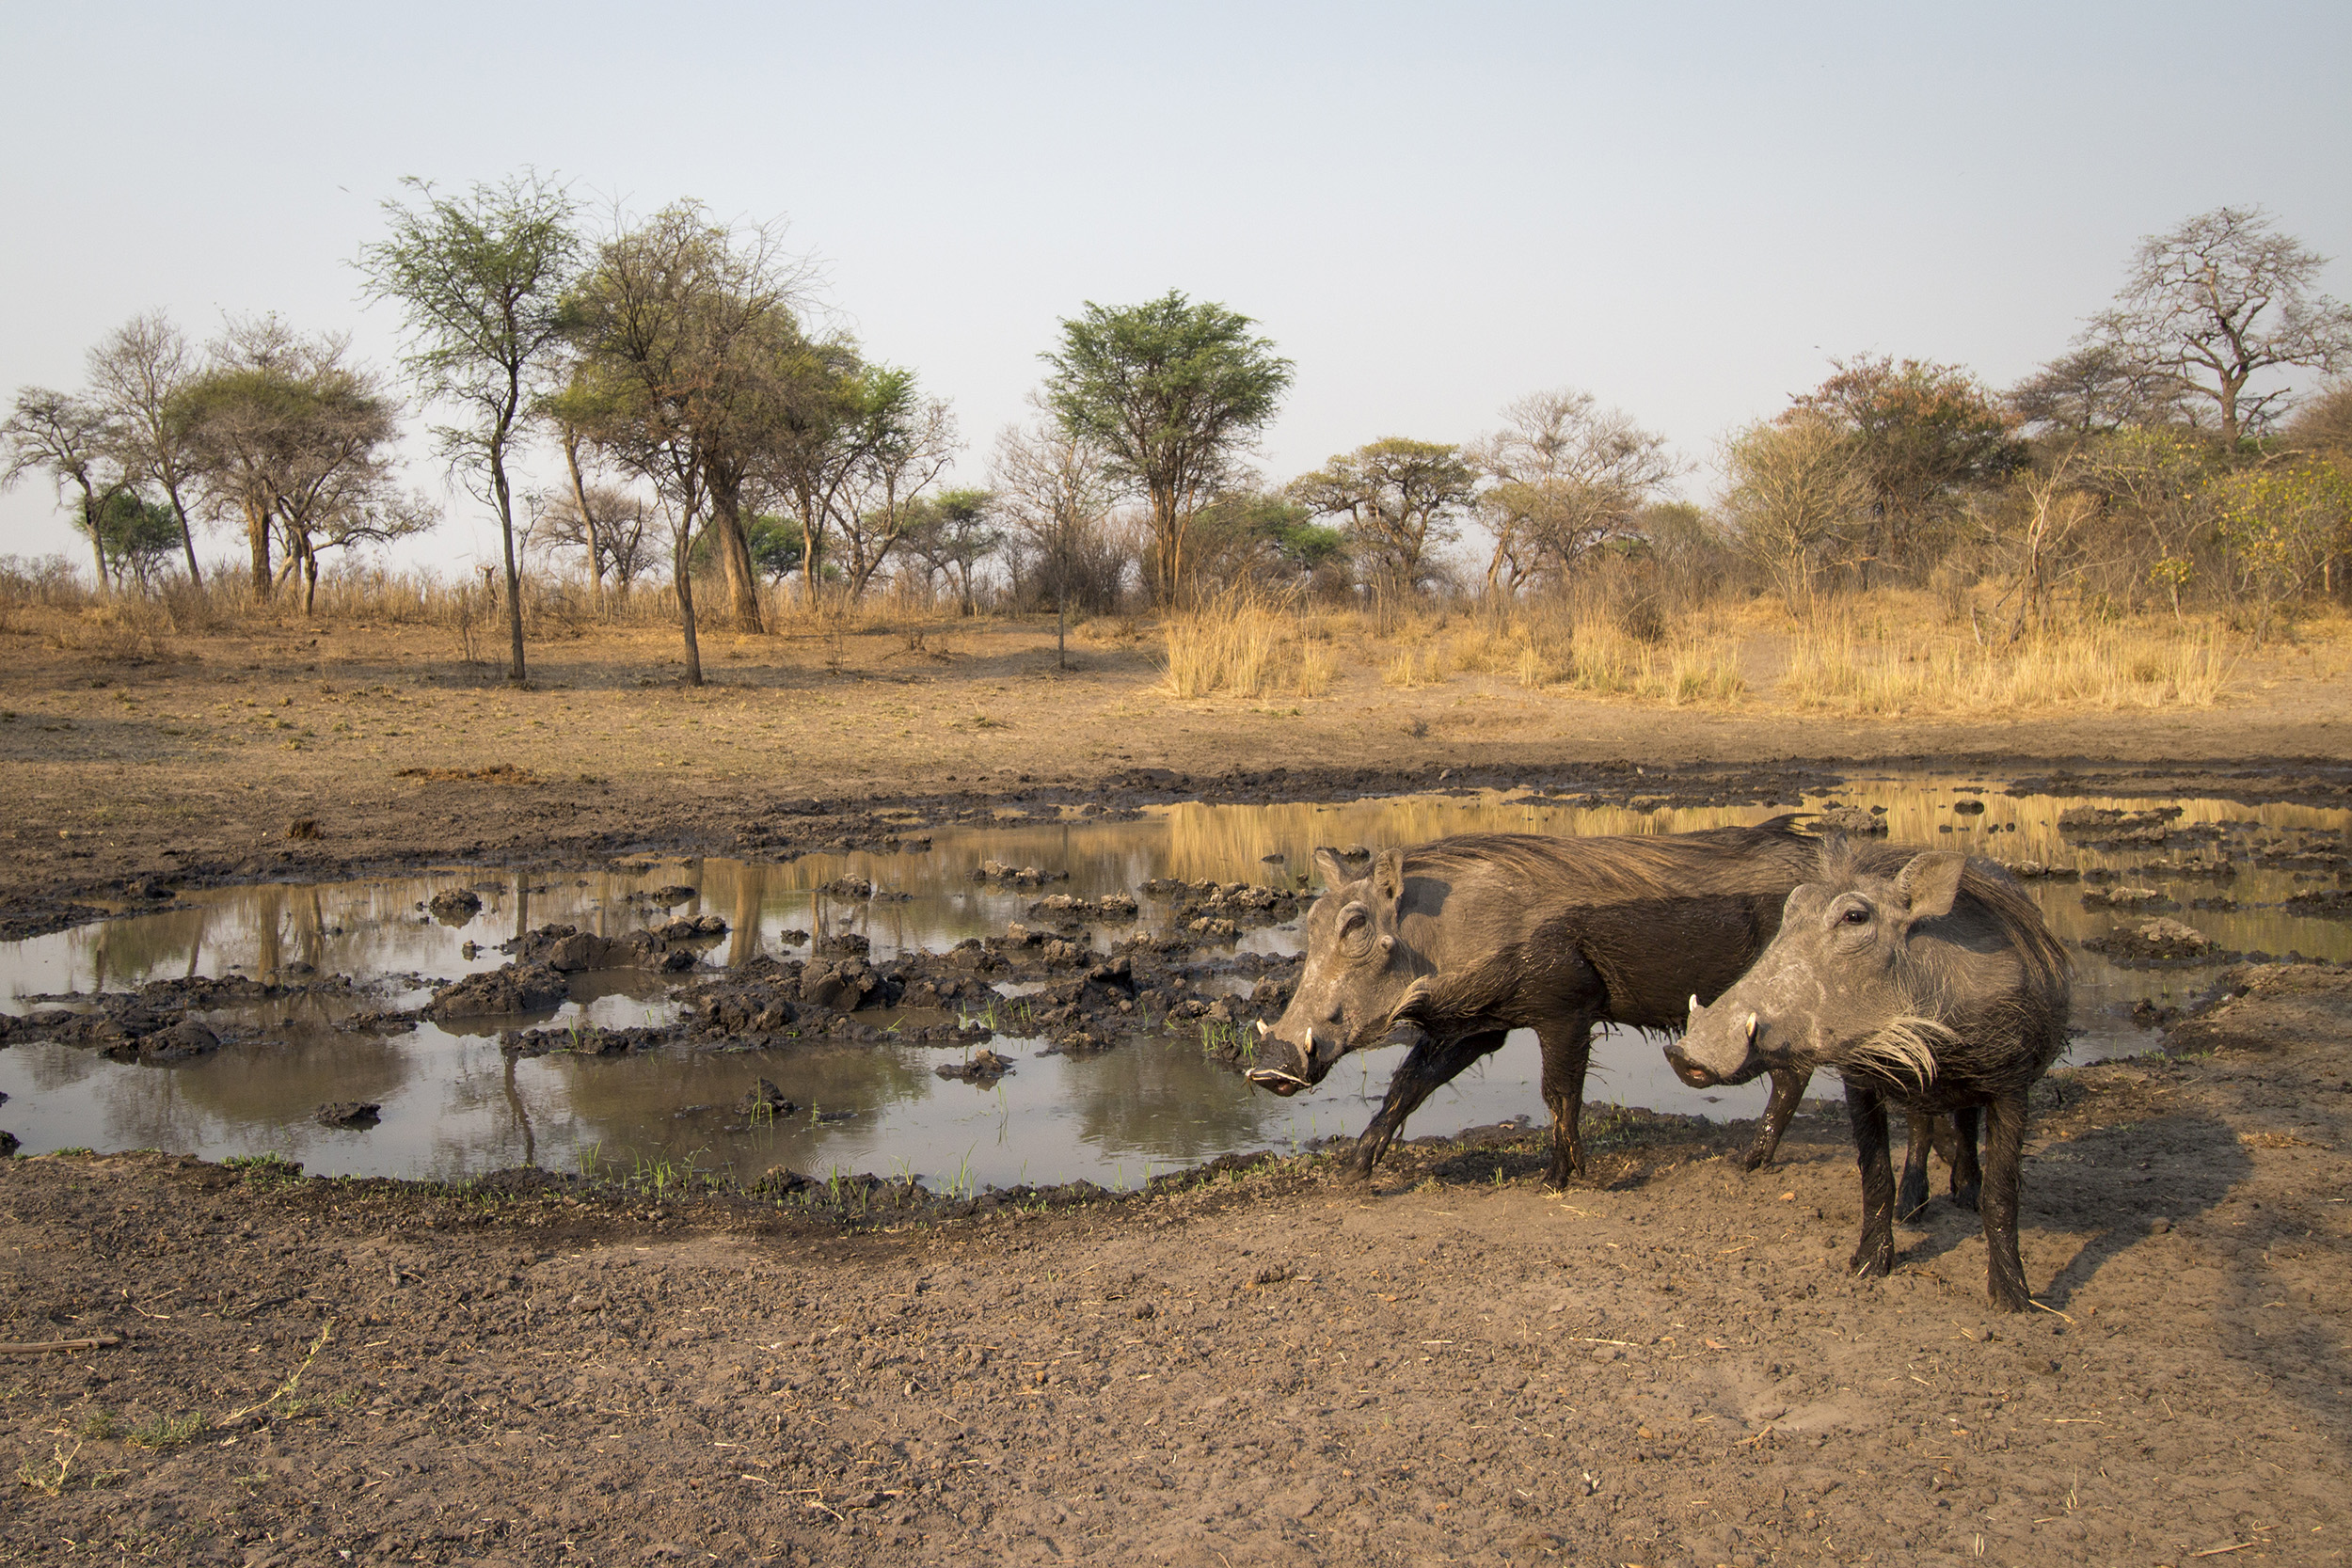 A camera trap image of warthogs using Camtraptions PIR motion sensor.